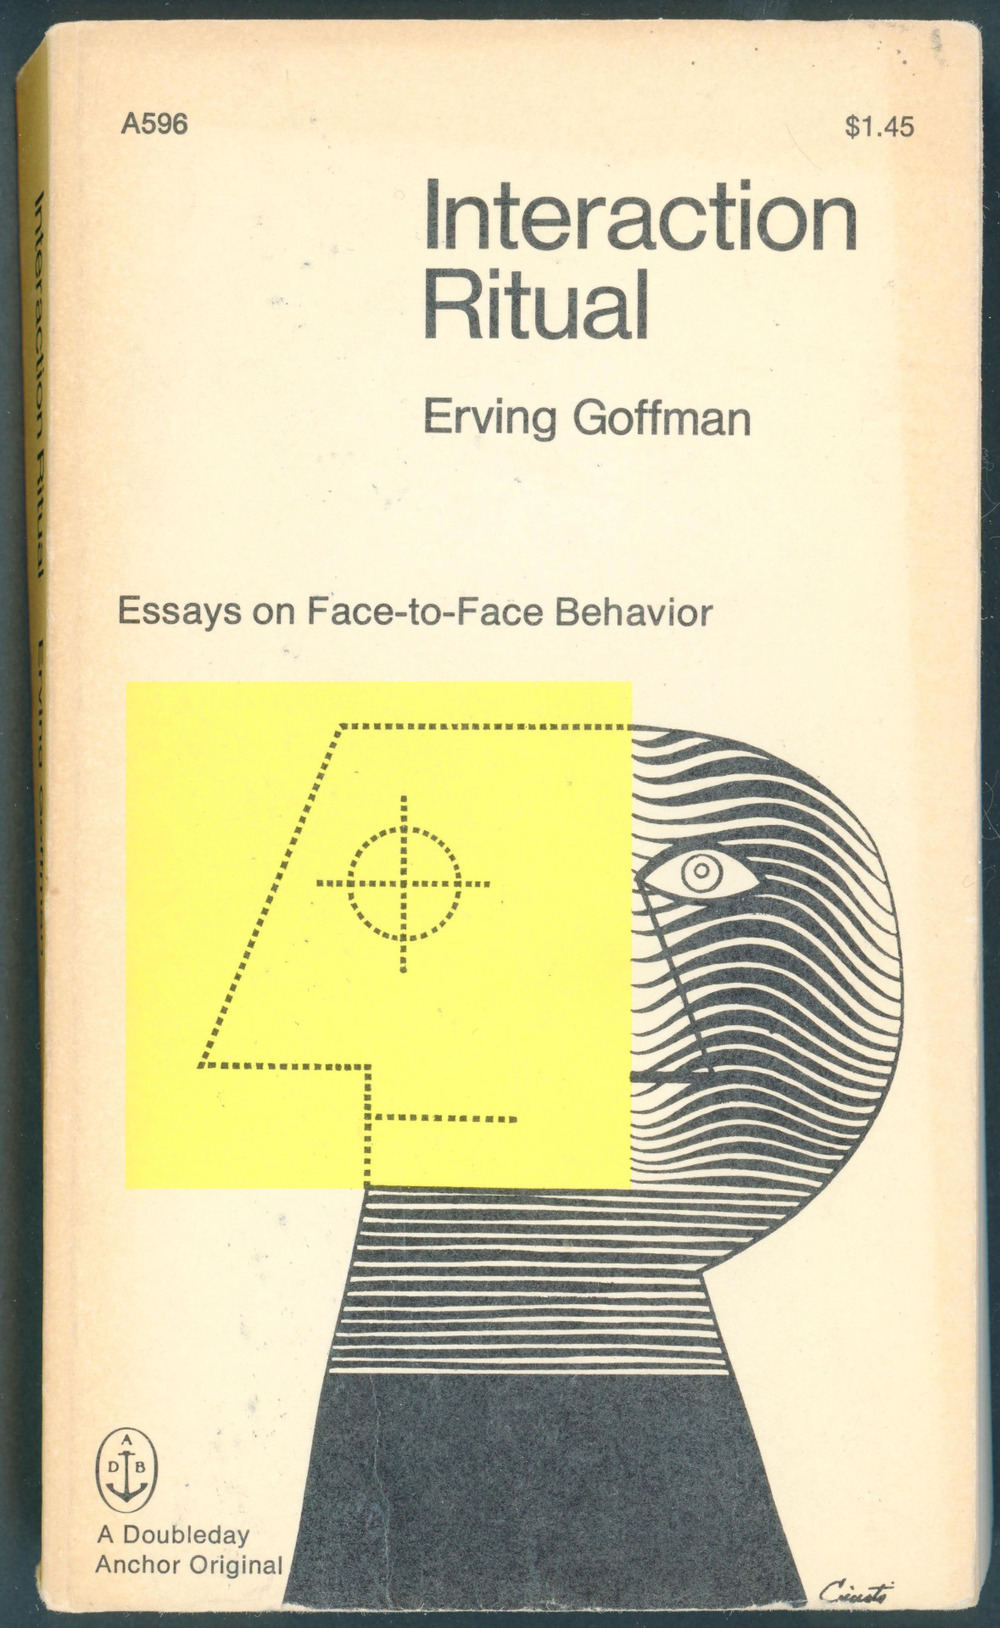 jellobiafrasays :     interaction ritual  (1967 ed., cover design by george giusti)